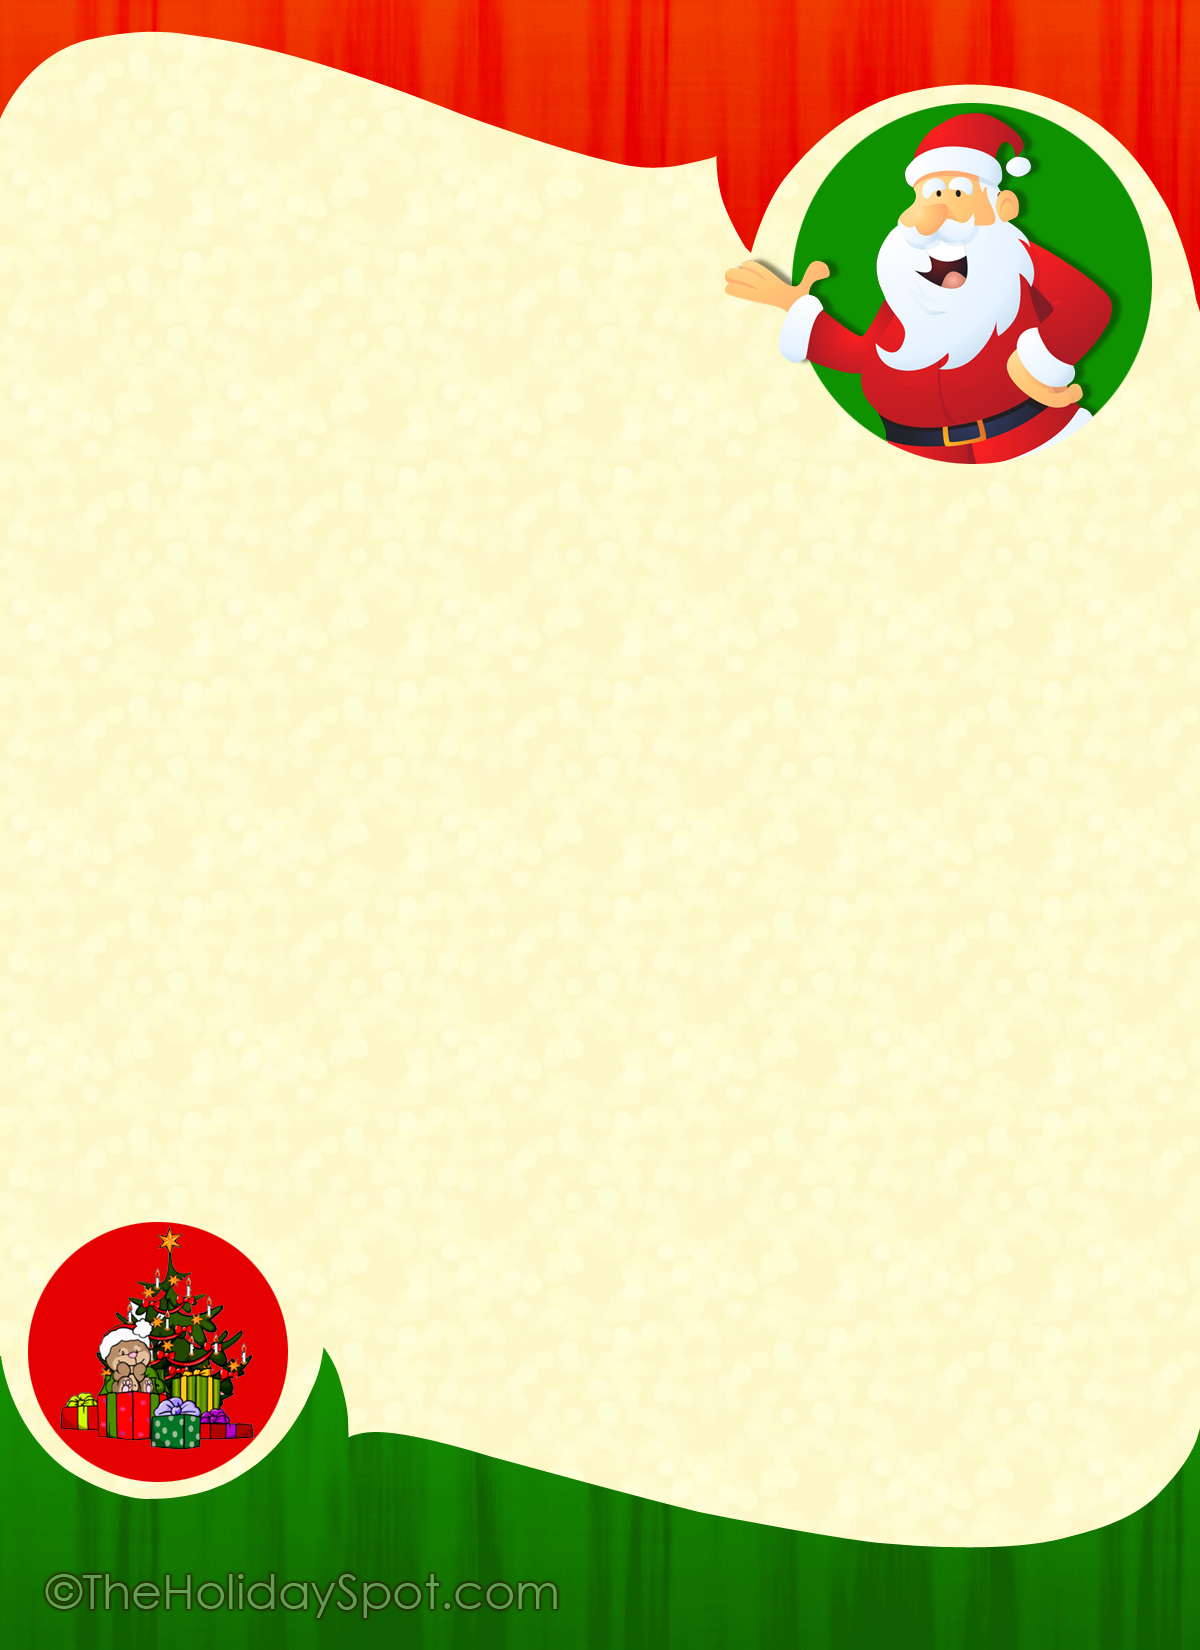 Free Christmas Borders For Letters Images & Pictures - Becuo